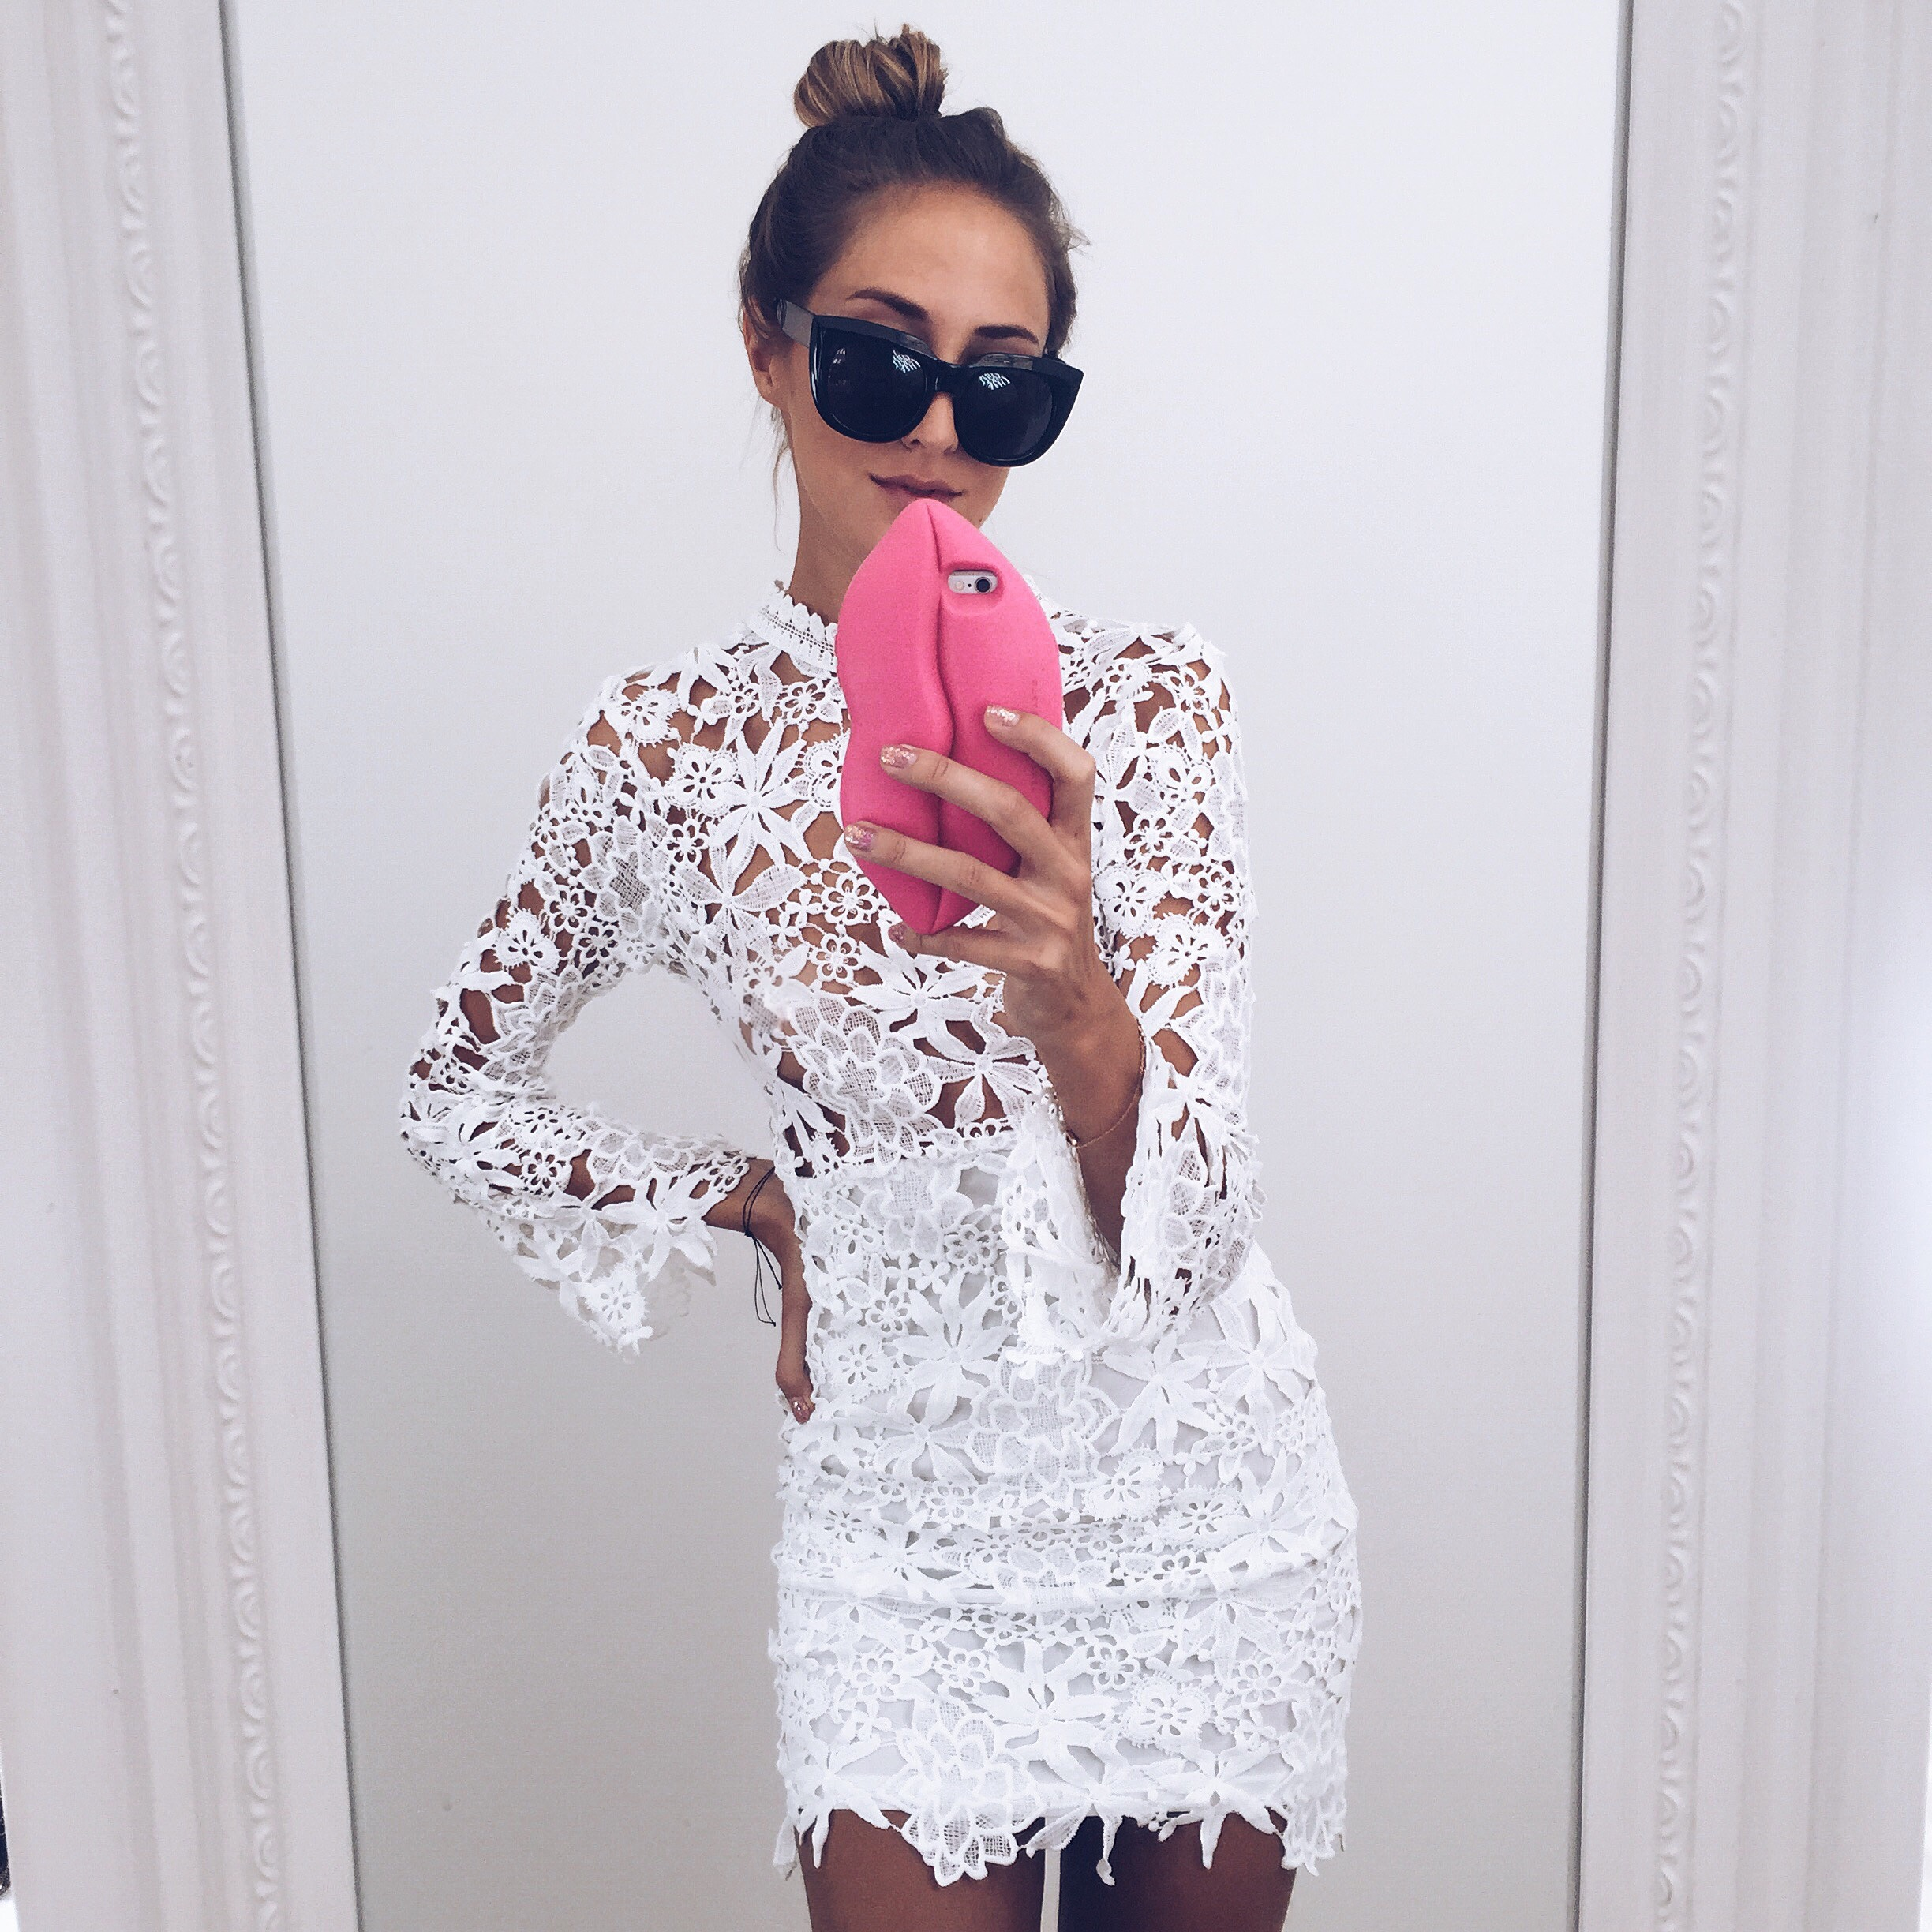 linda_tsetis_worlds_affair_showpo_white_lace_dress